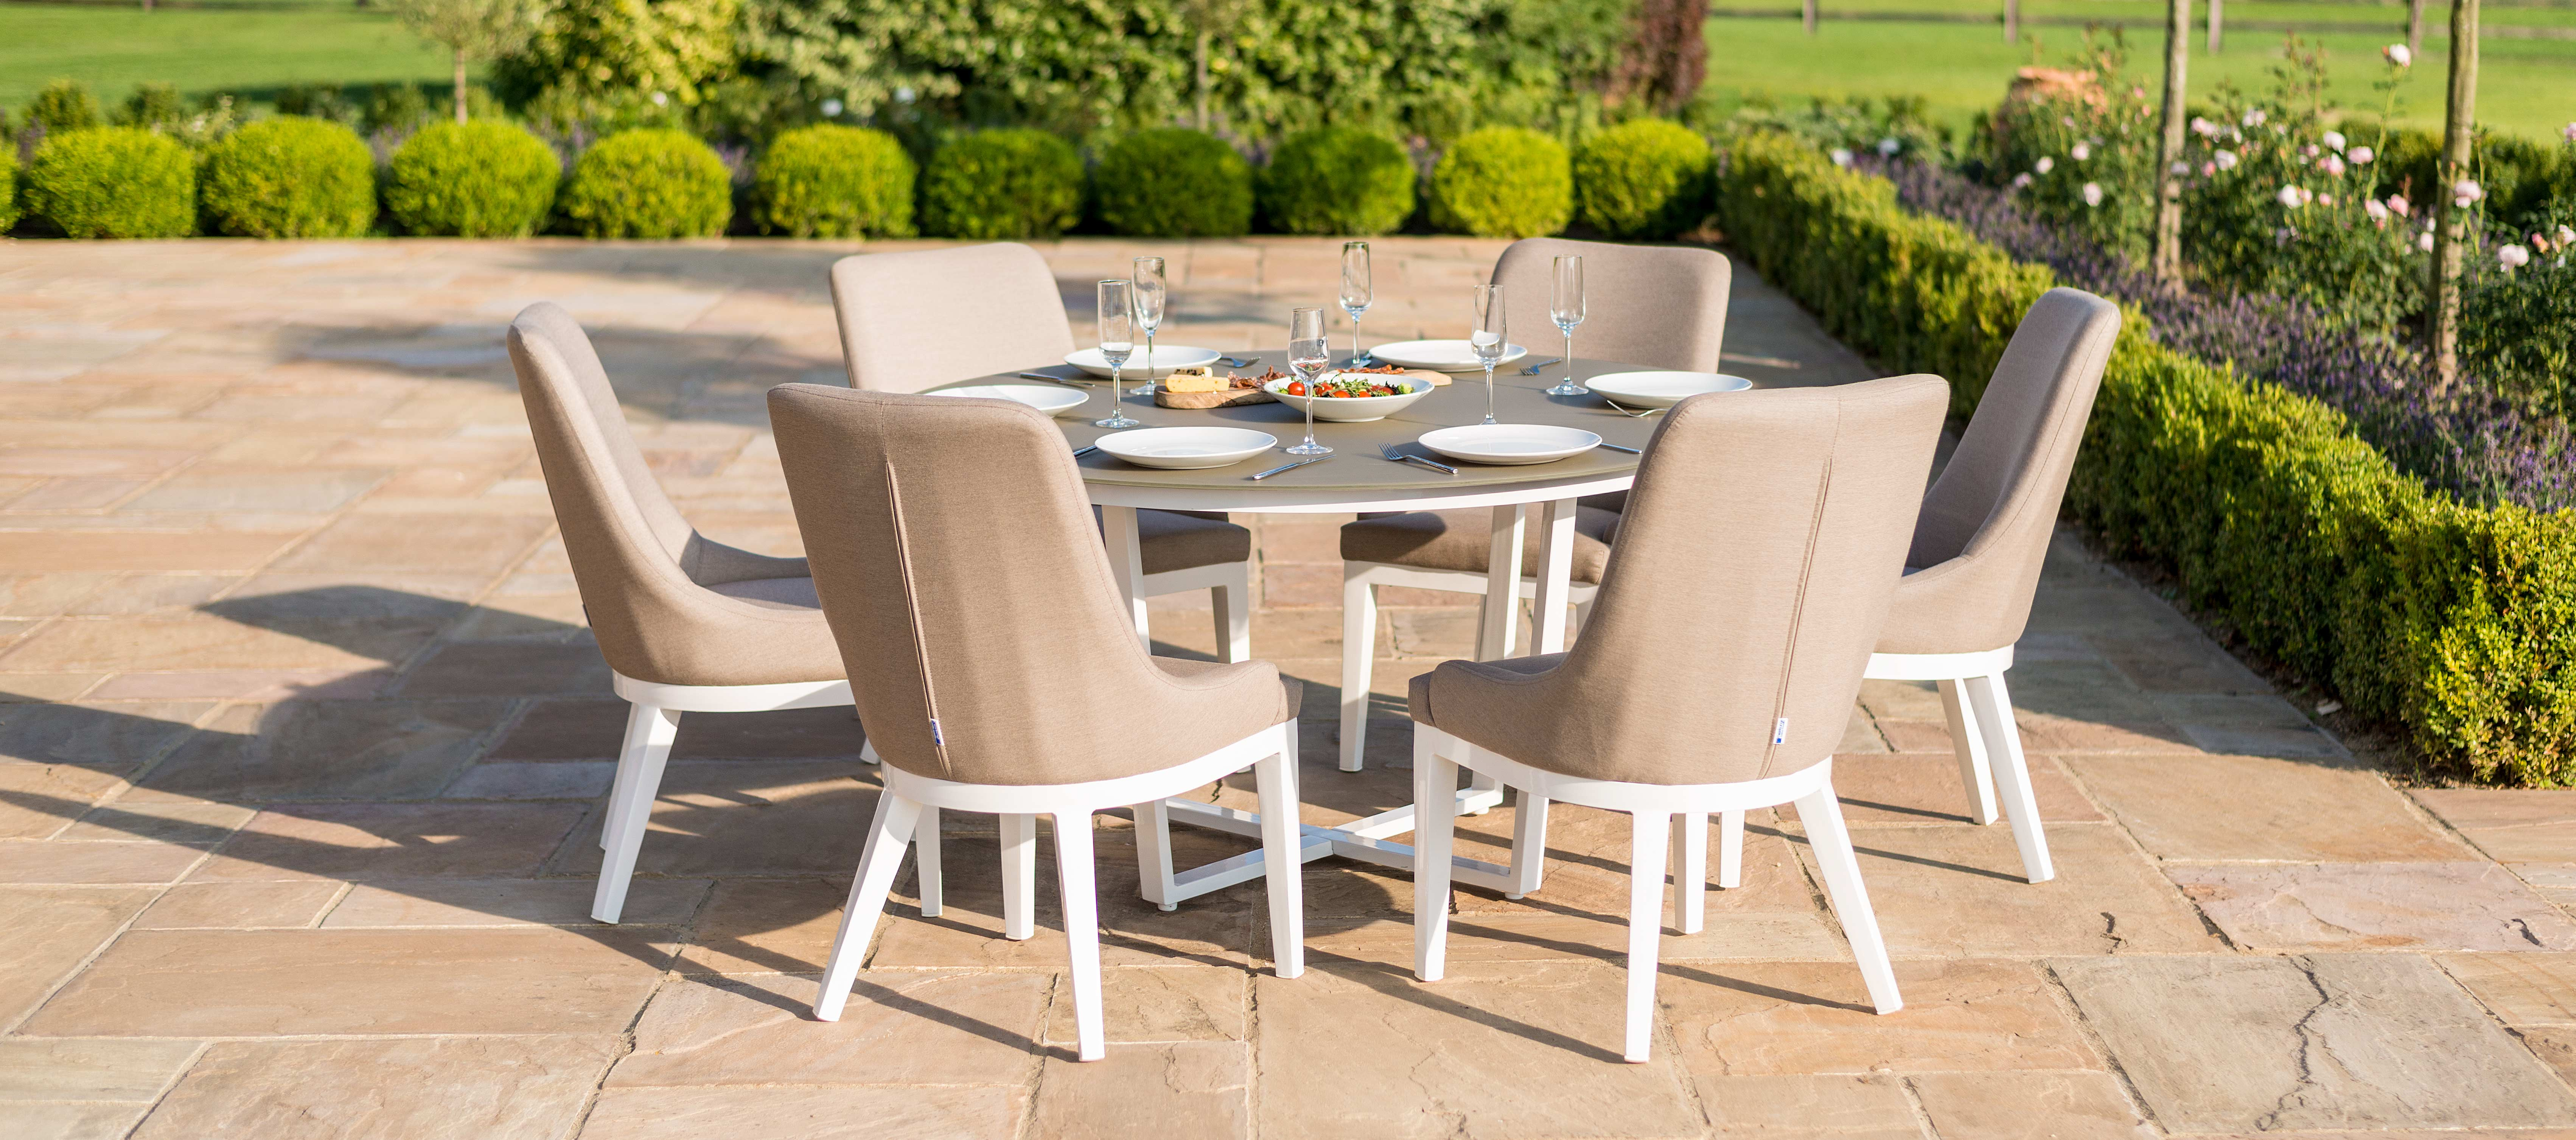 Maze Lounge - Outdoor Fabric Pacific 6 Seat Round Dining Set - Taupe